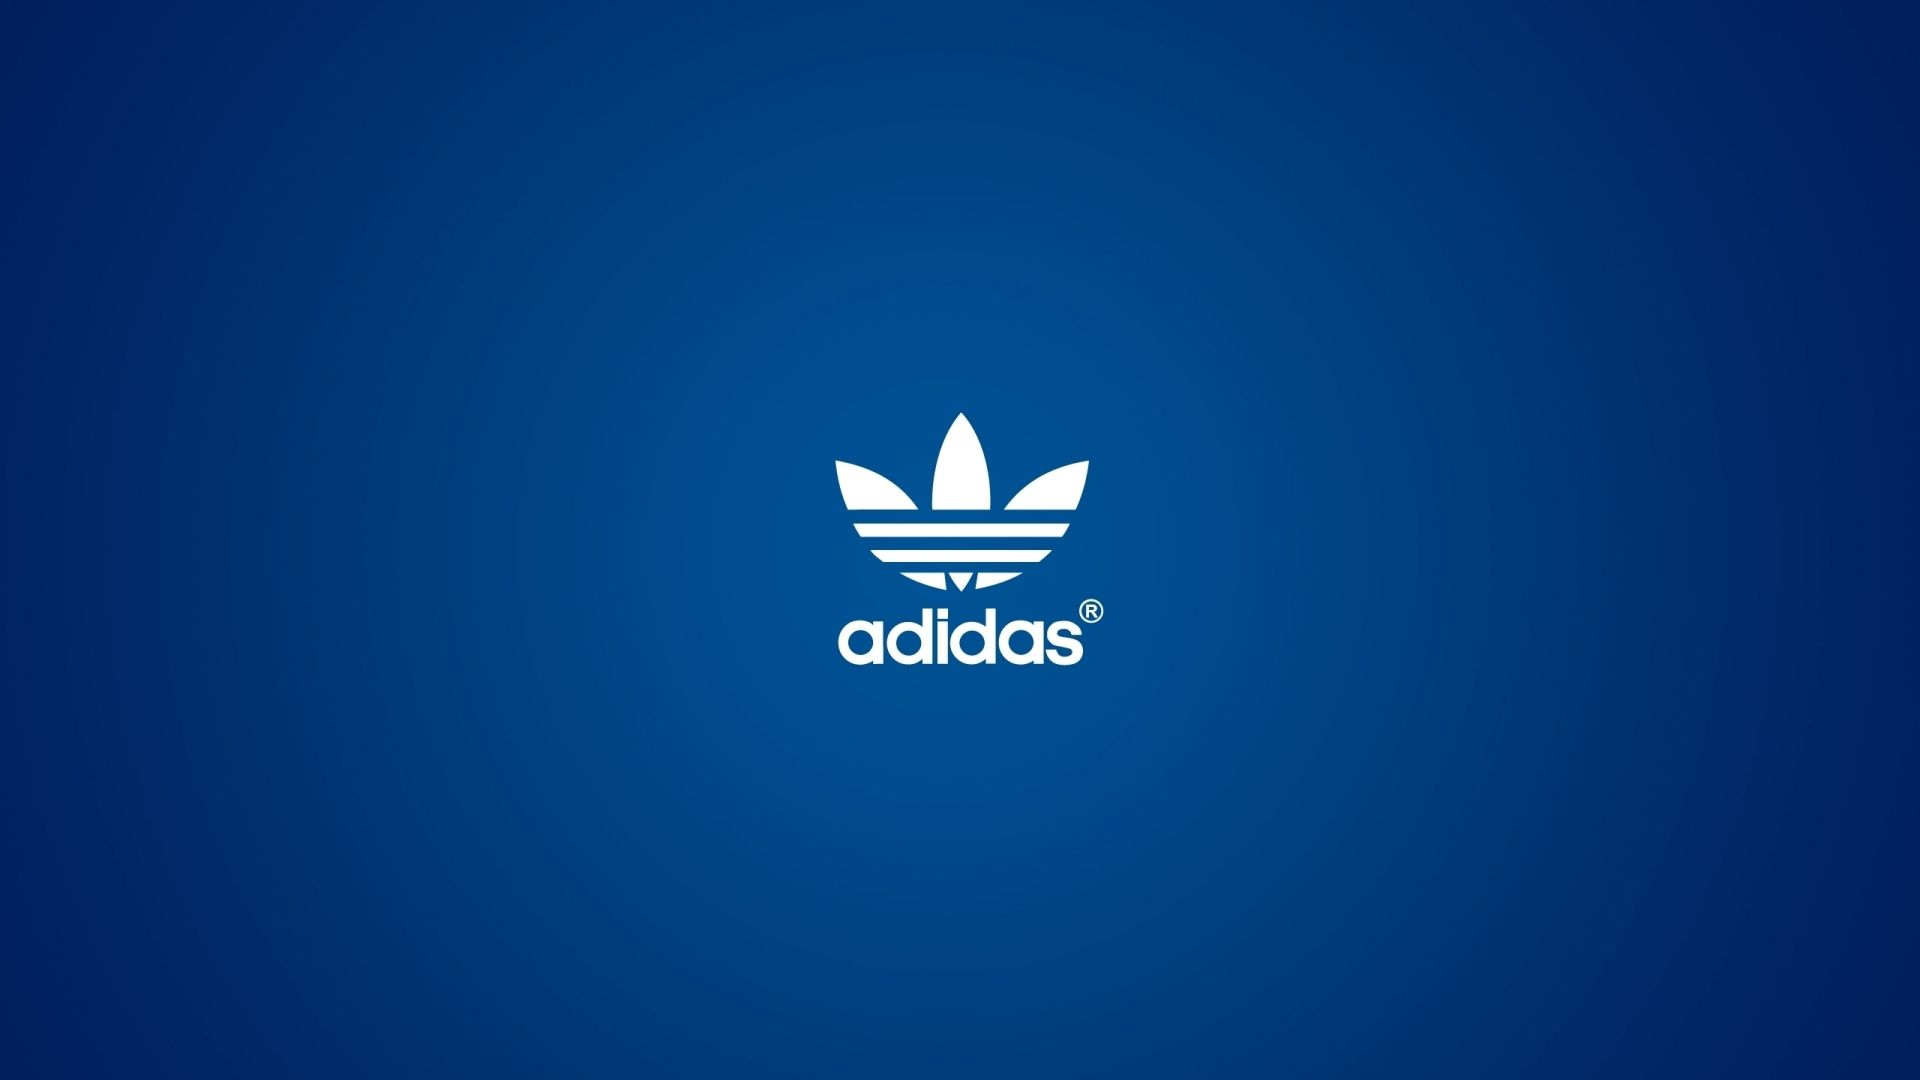 The Adidas Logo On A Blue Background